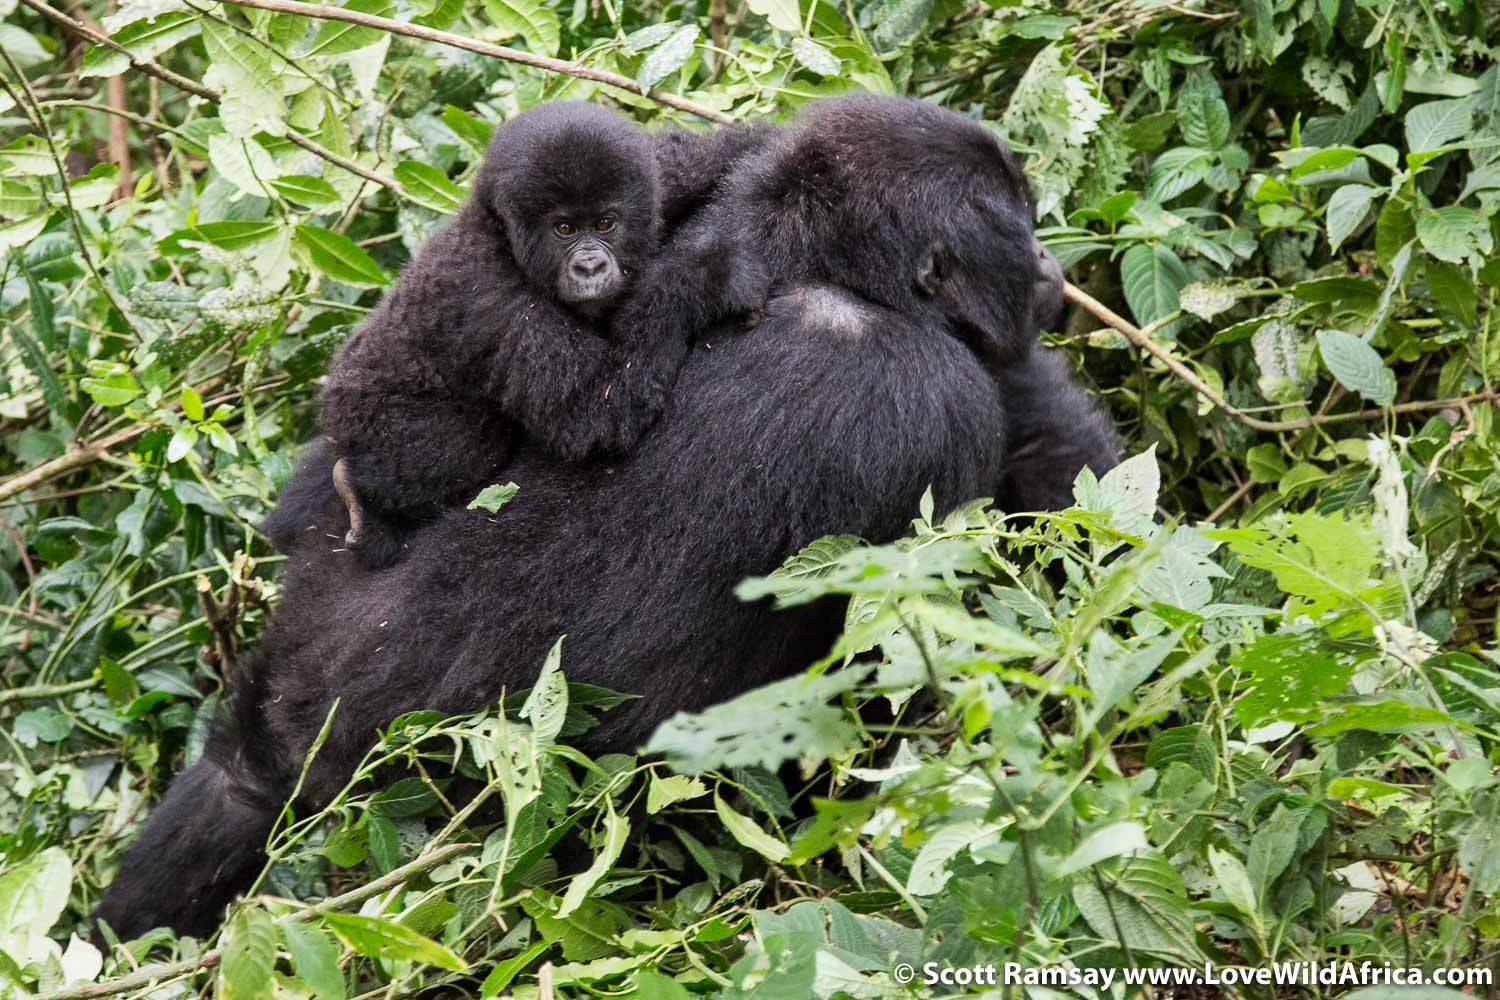 A baby rides the back of his mother, as the gorillas moved past us to a clearing nearby.